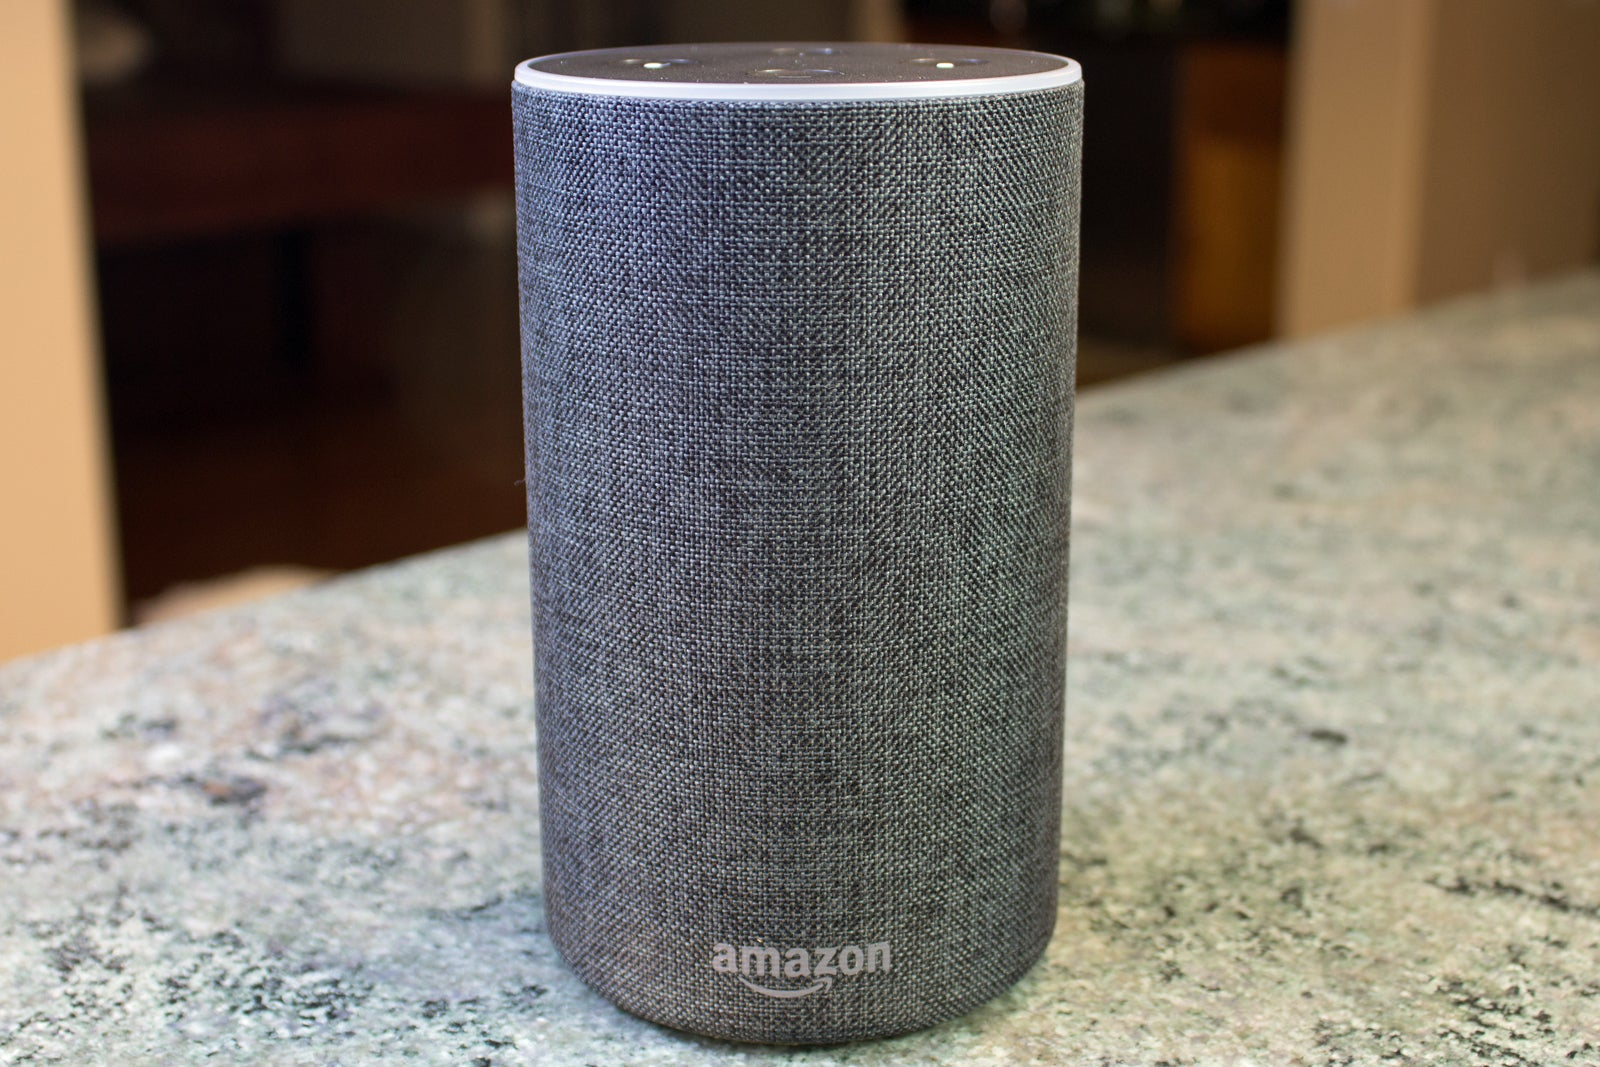 amazon echo description